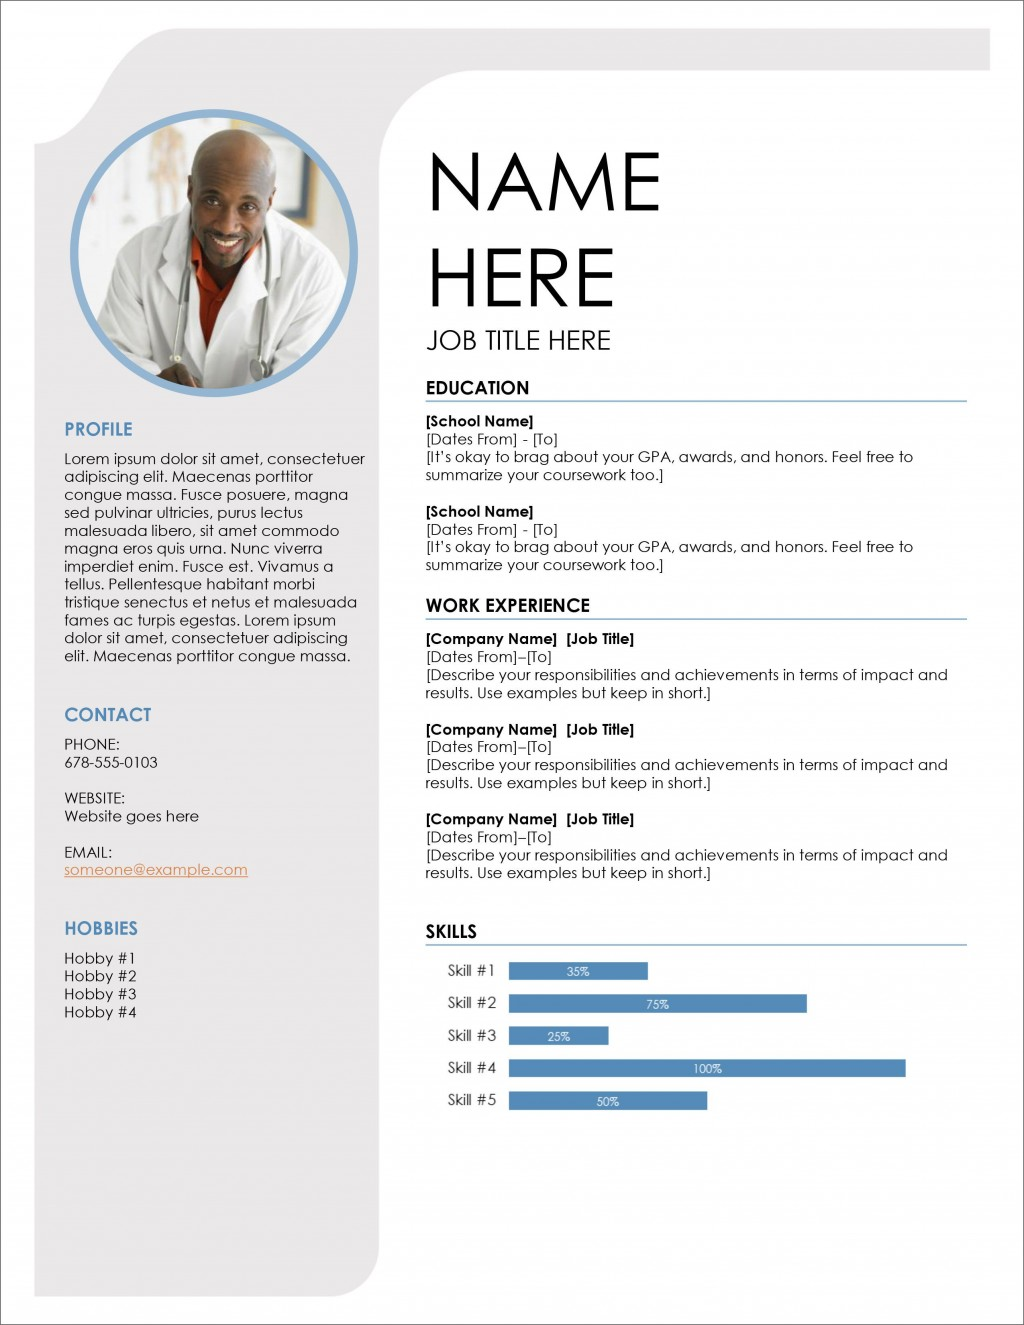 005 Wonderful Download Free Resume Template Photo  Word Professional 2019 2020Large